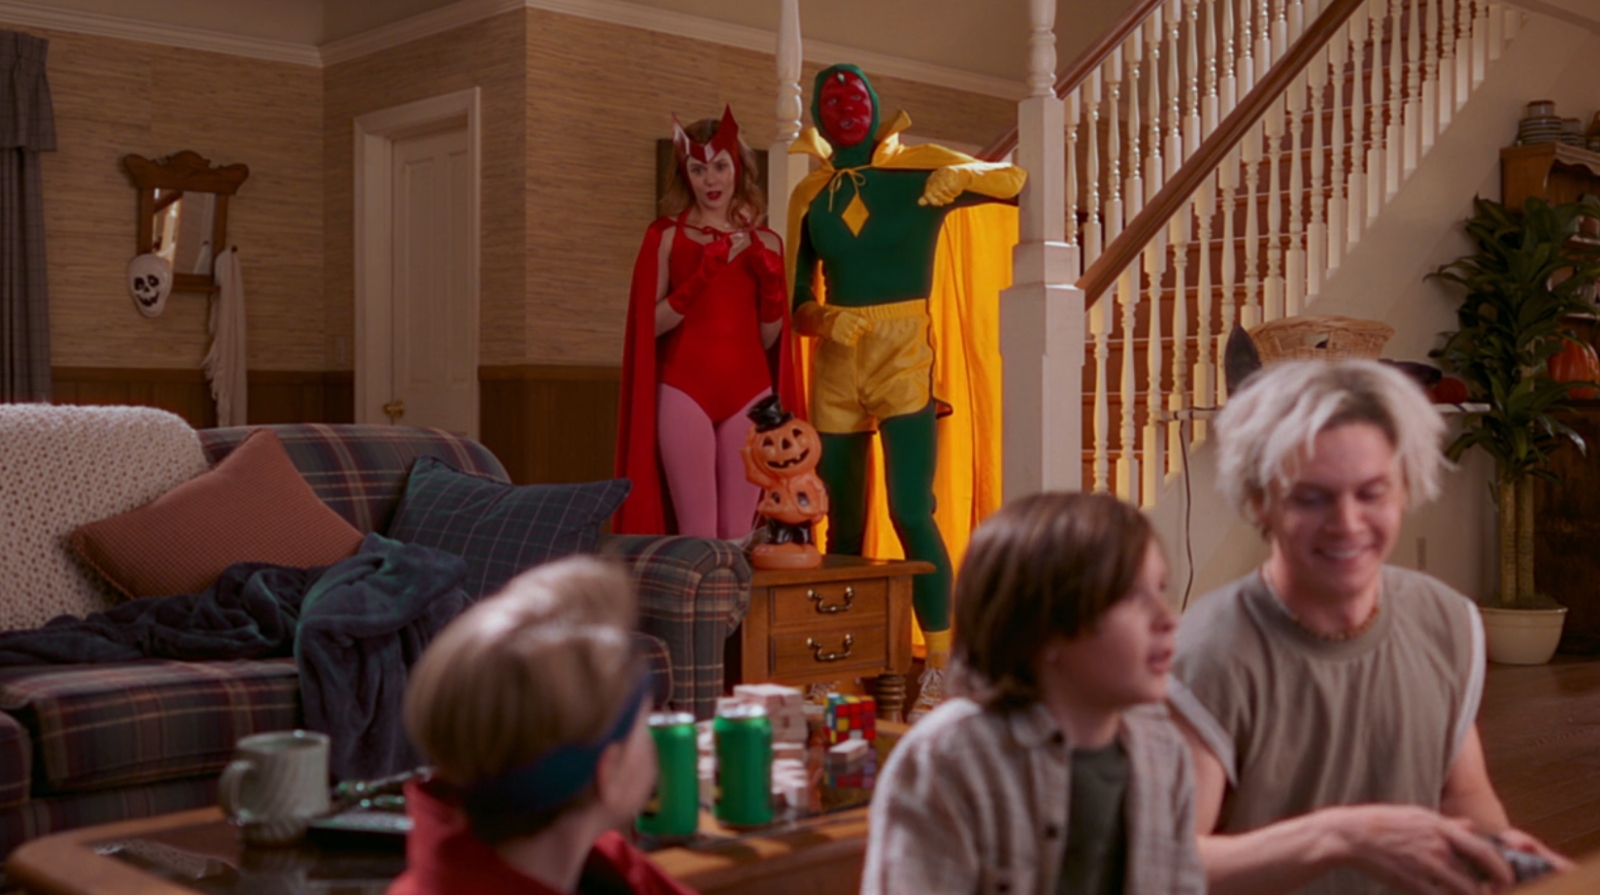 Wanda and Vision don comic book accurate costumes for Halloween in WandaVision episode 6.